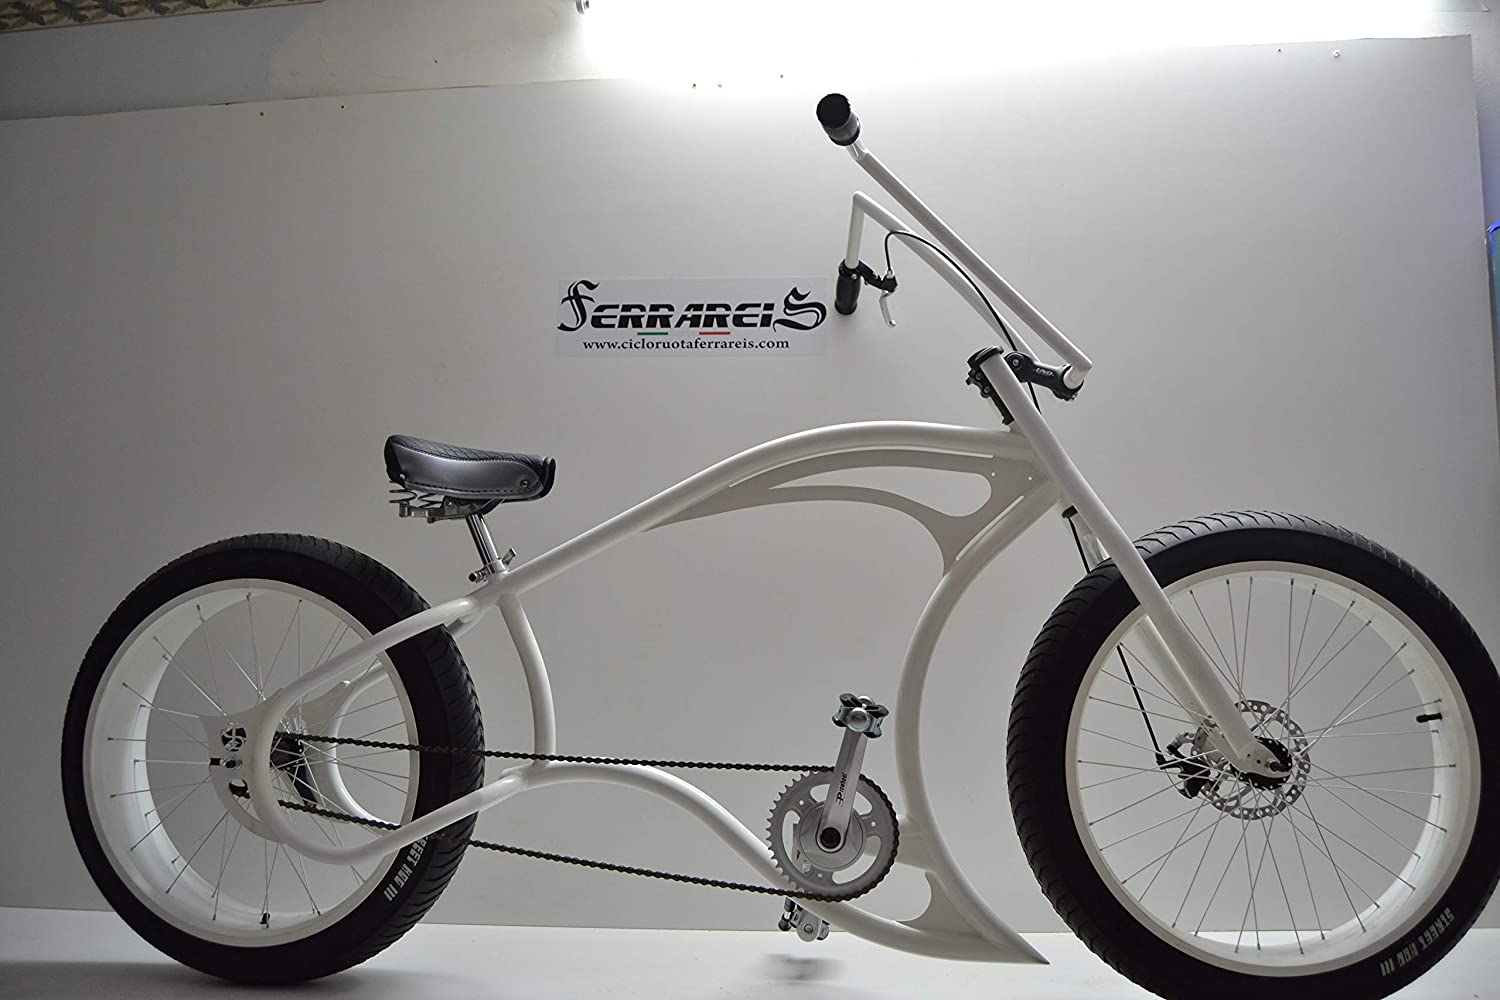 Cicli Ferrareis Cruiser Chopper Fat Bike 24 1V Custom Bike ...